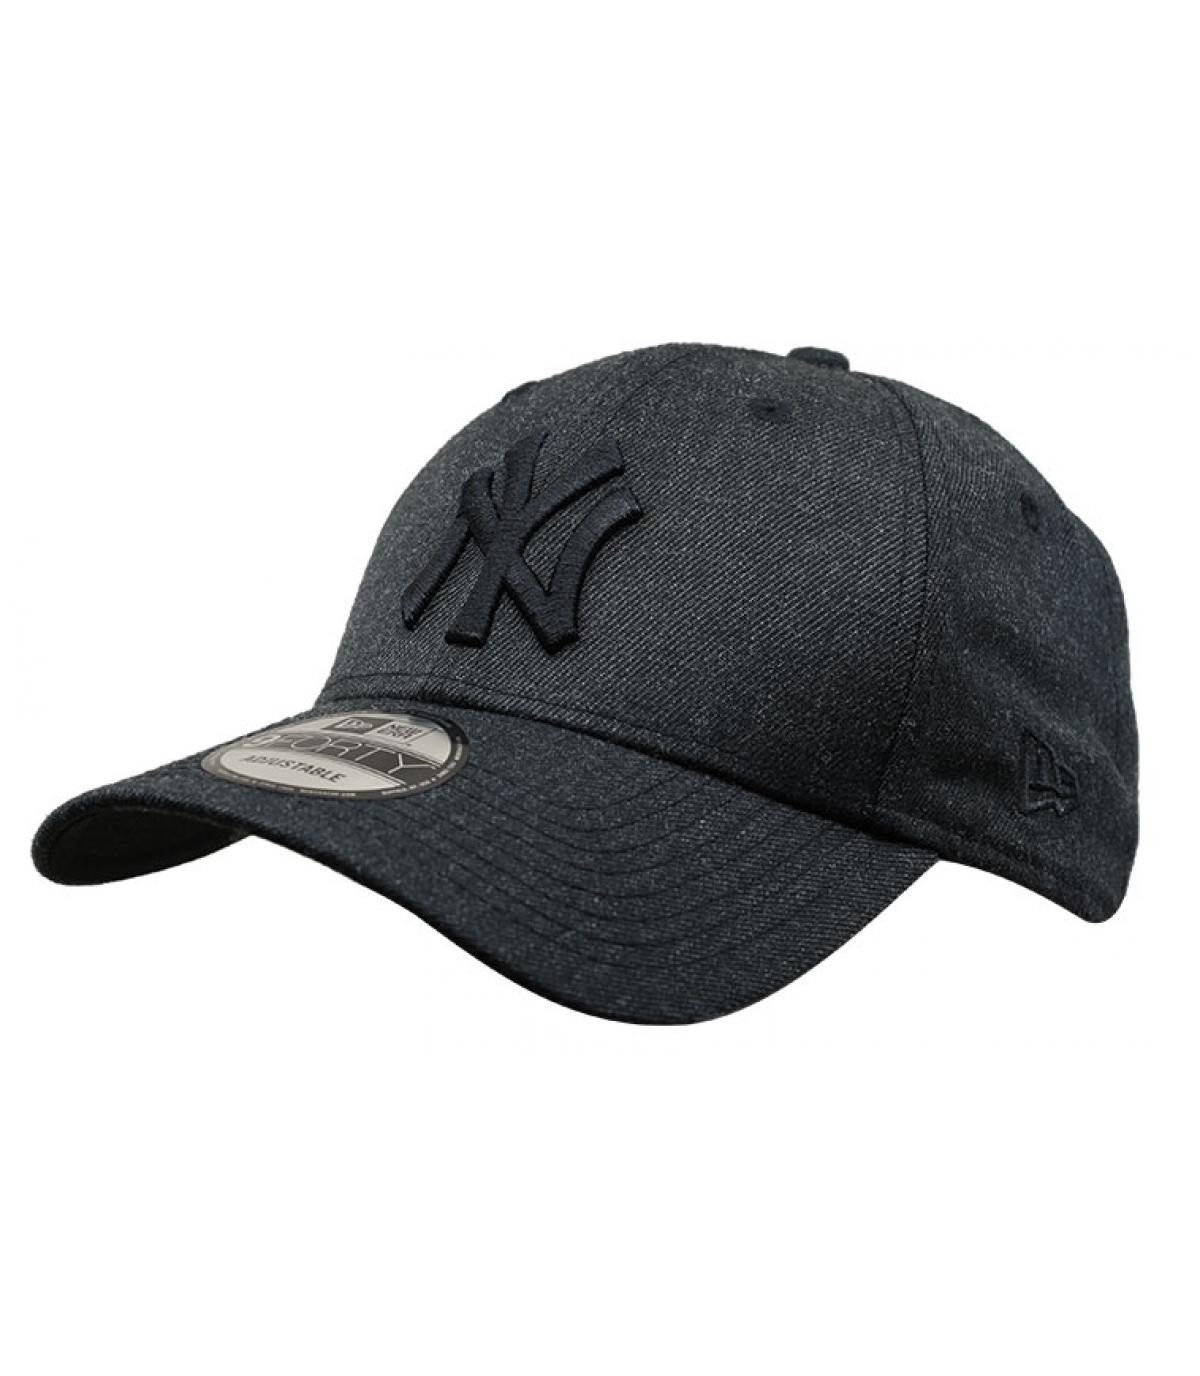 Details Winterized The League NY 940 black - afbeeling 2